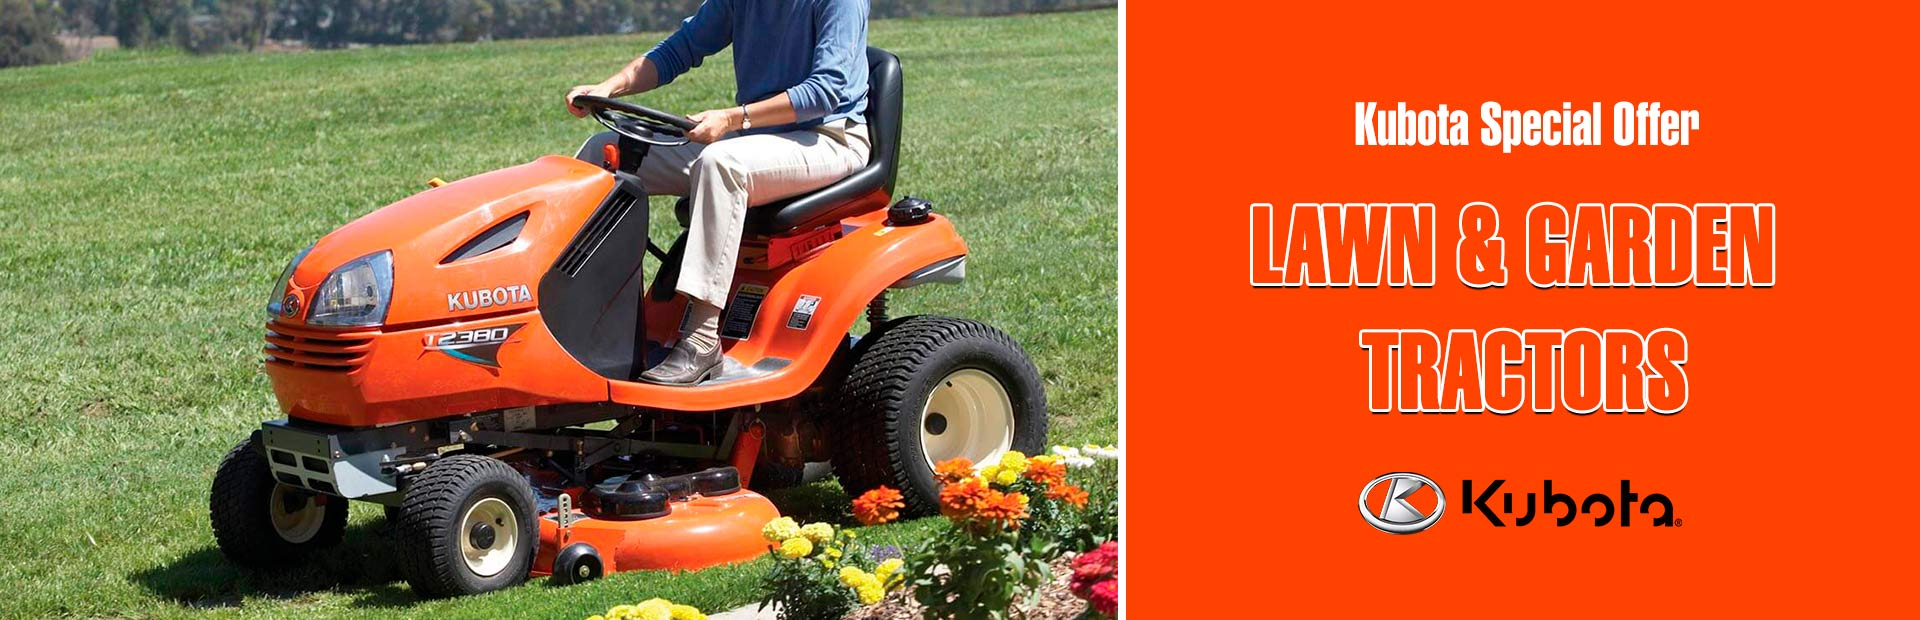 Kubota Kubota Special Offer Lawn Garden Tractors Bill S Power Center Brookfield Wi 262 781 6400